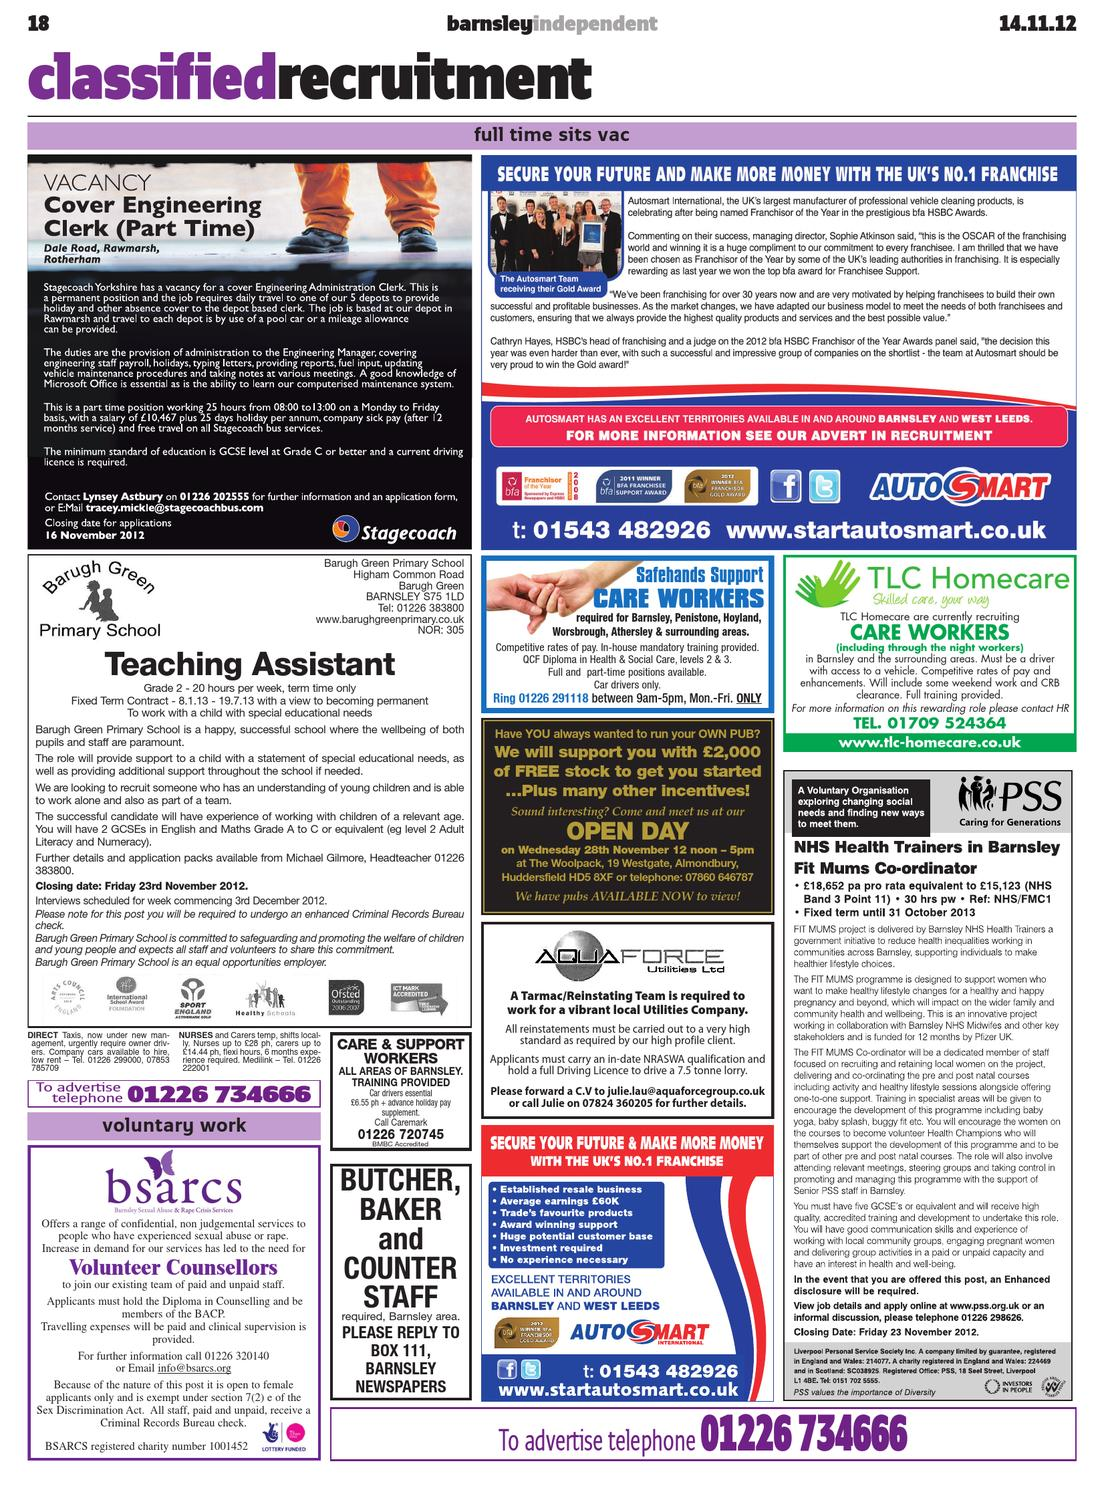 Barnsley Independent - 14th November 2012 (Week 46) by Barnsley